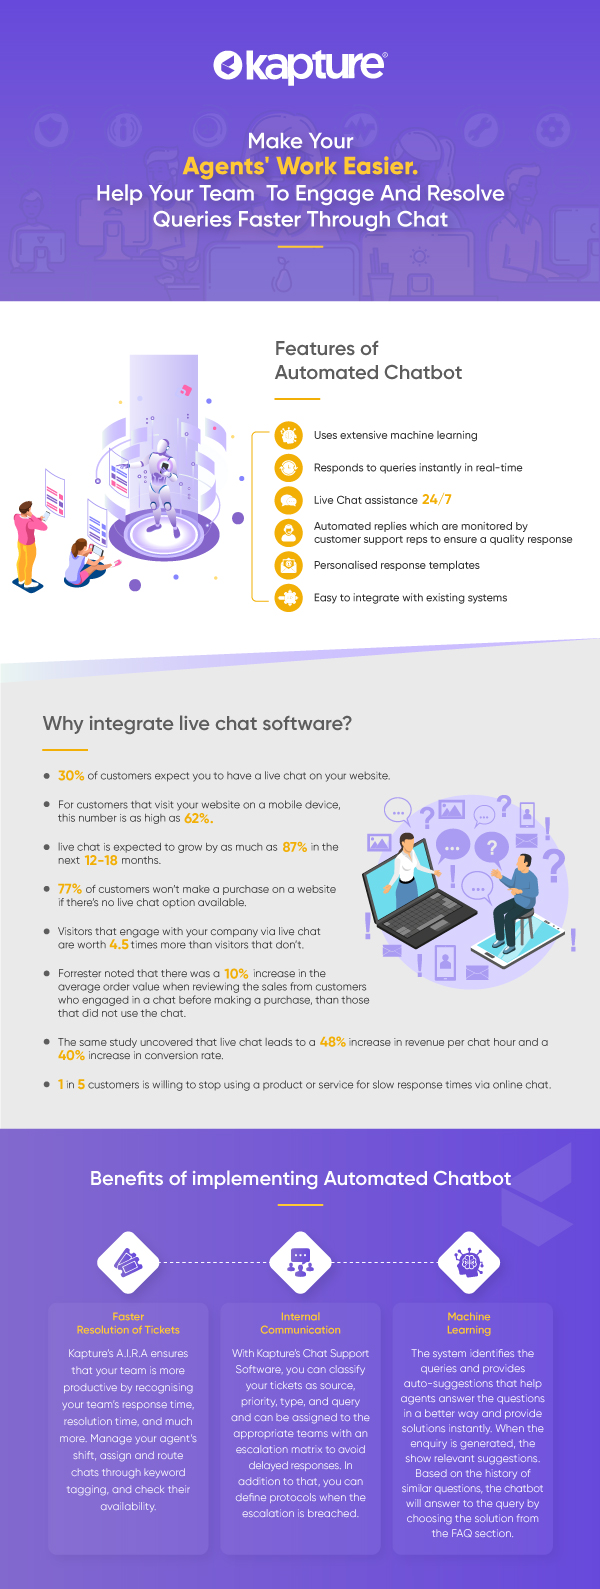 Why Integrate Live Chat Software?